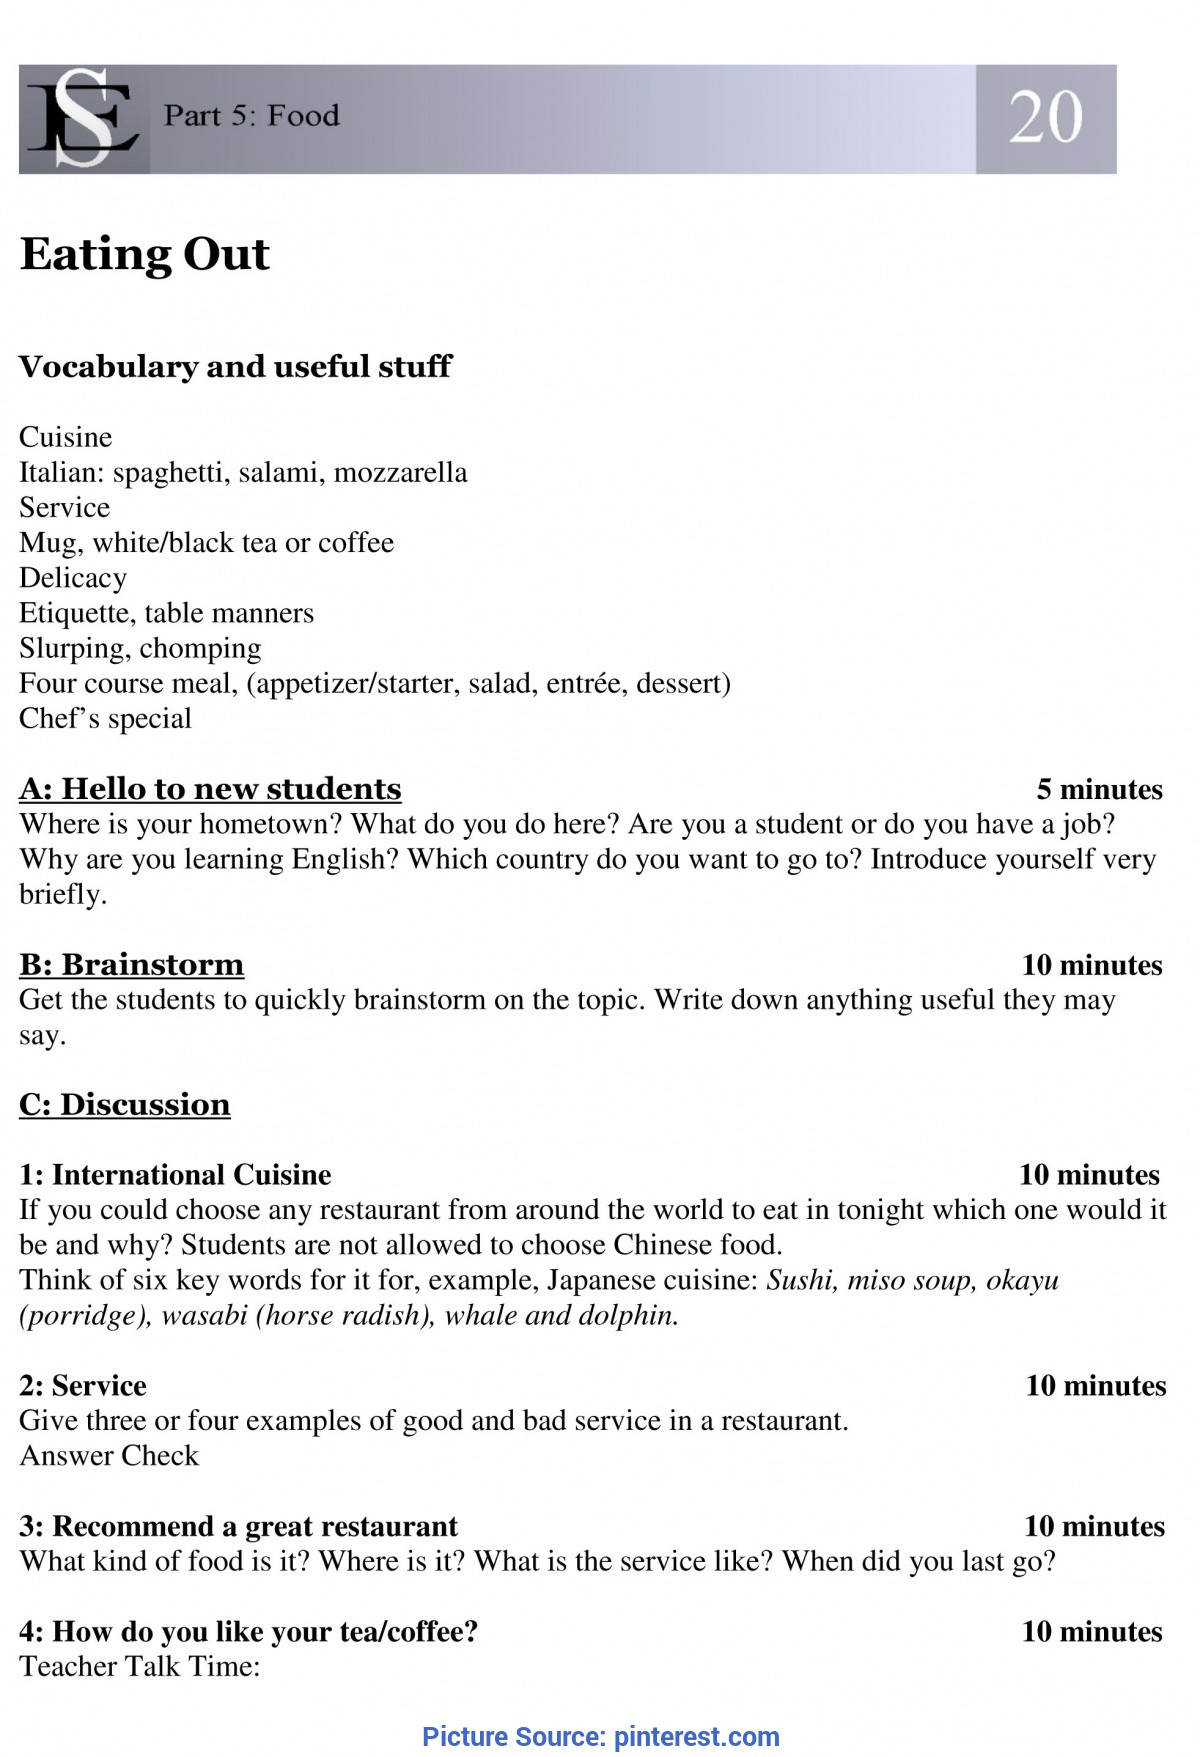 Special Lesson Plan In English 4 Sample Lesson Plan: T20 Eating Out   Prepositions And Worksh